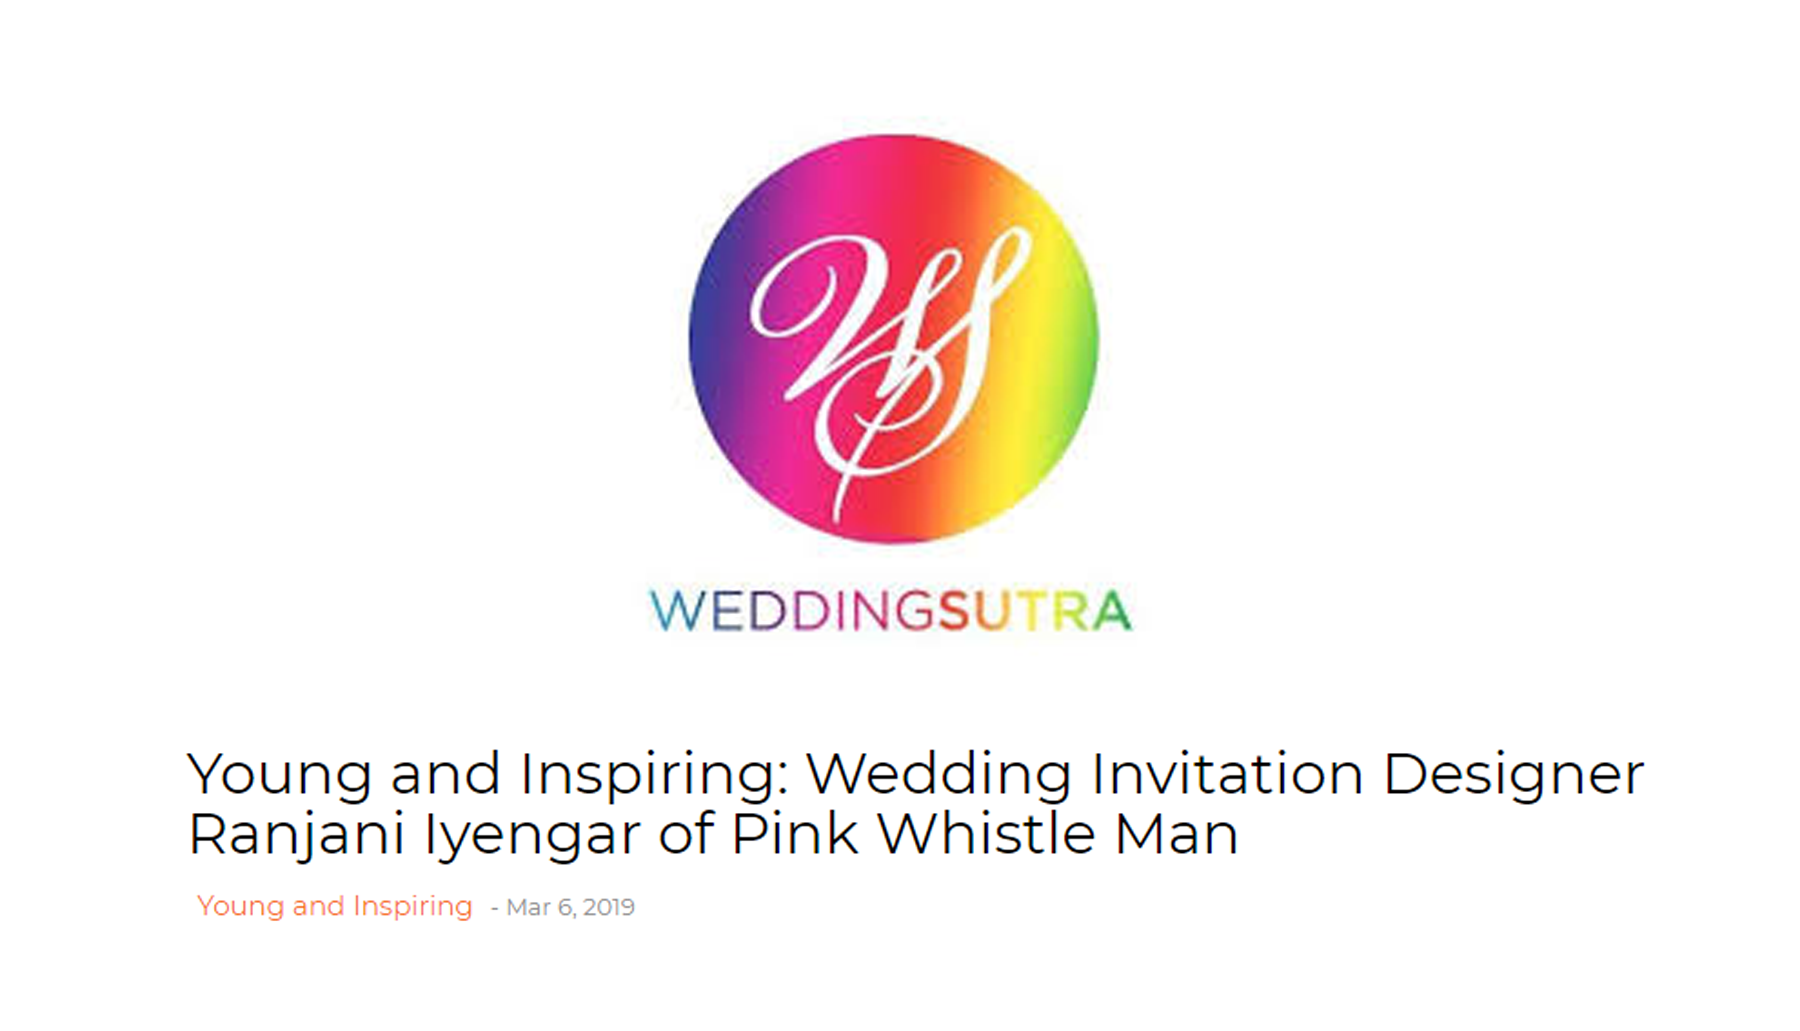 Young And Inspiring - Wedding Sutra